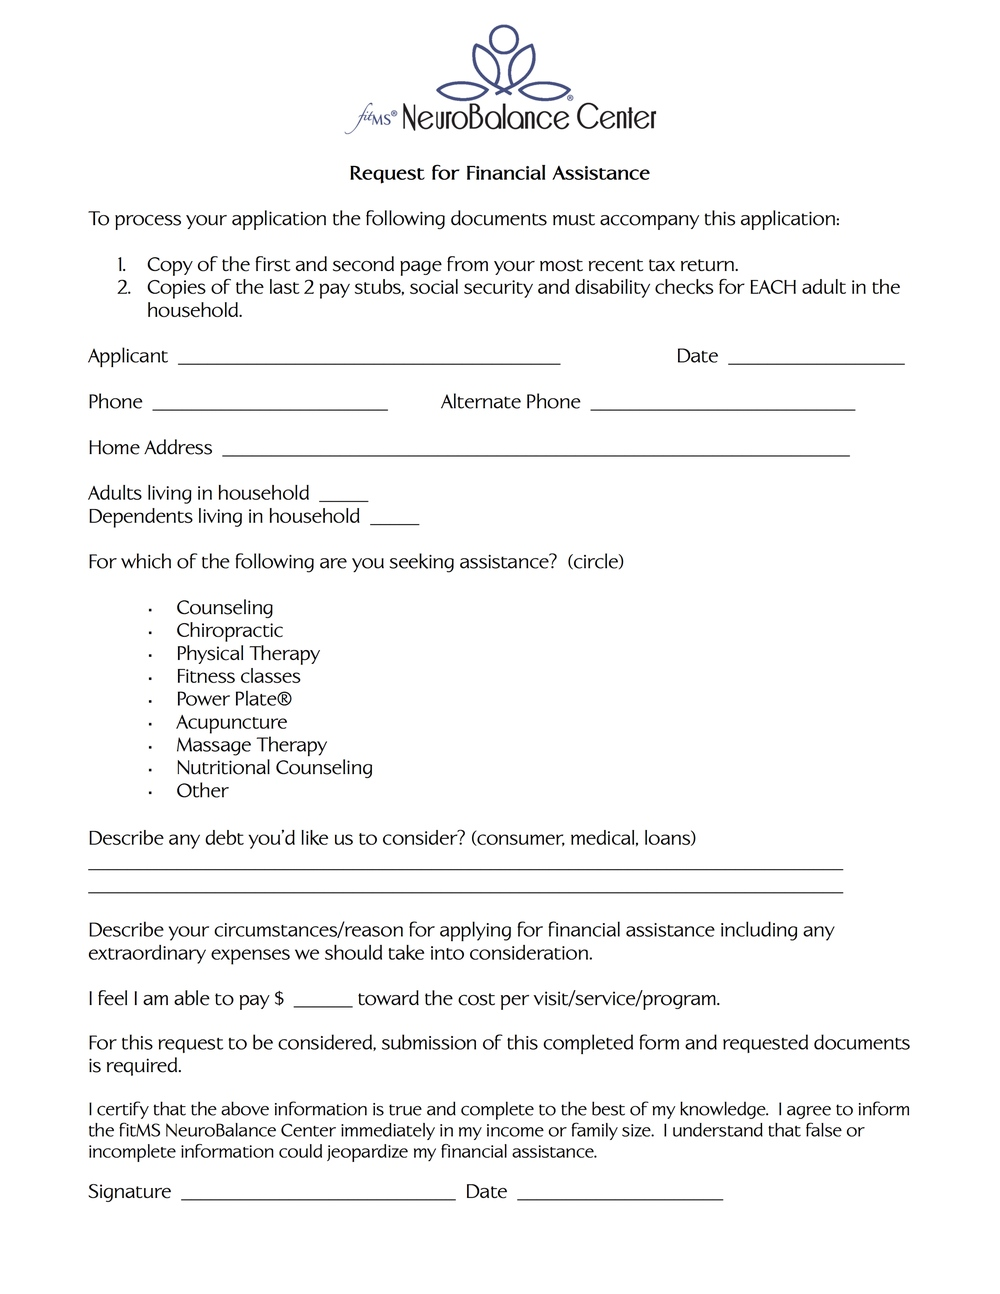 fitms financial-assistance application.jpg